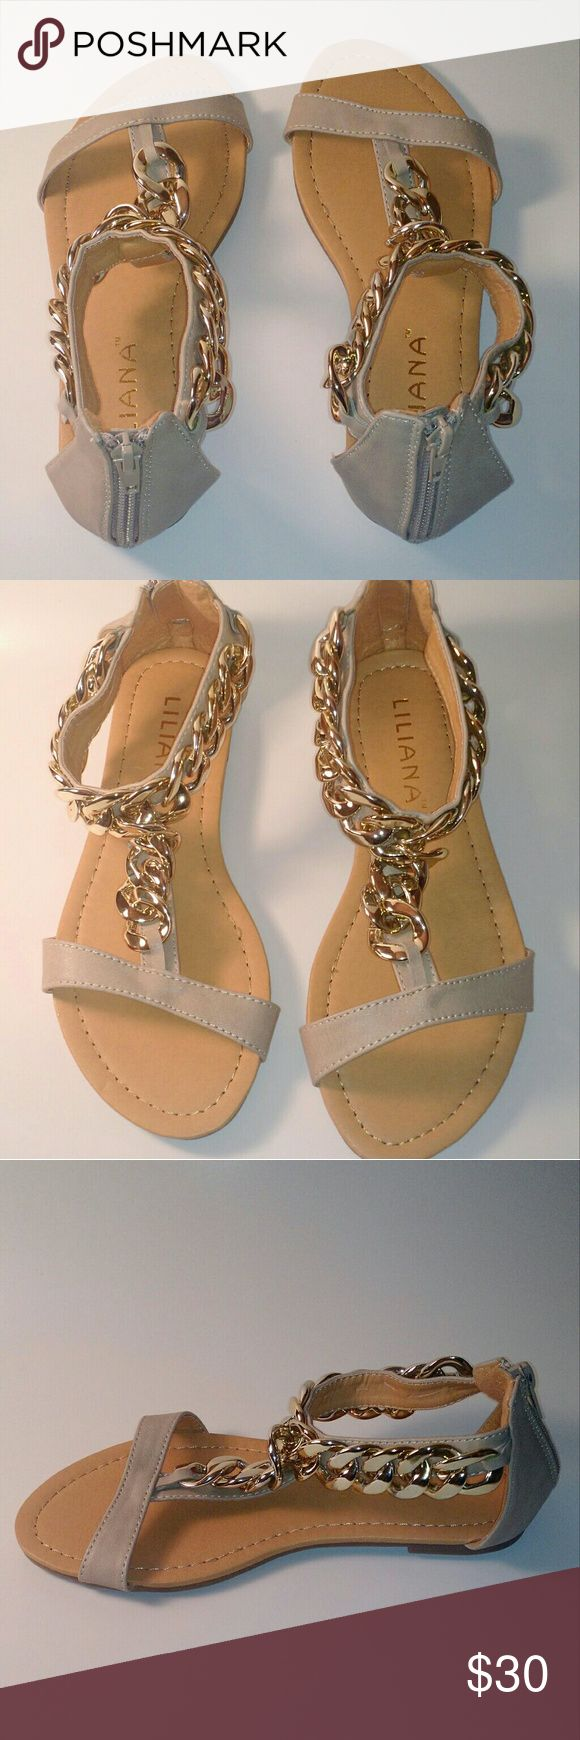 🚨1 HOUR SALE! CHAIN FLATS Beige faux leather material. Thick gold chain detail. Zip back closure. Shoes Sandals